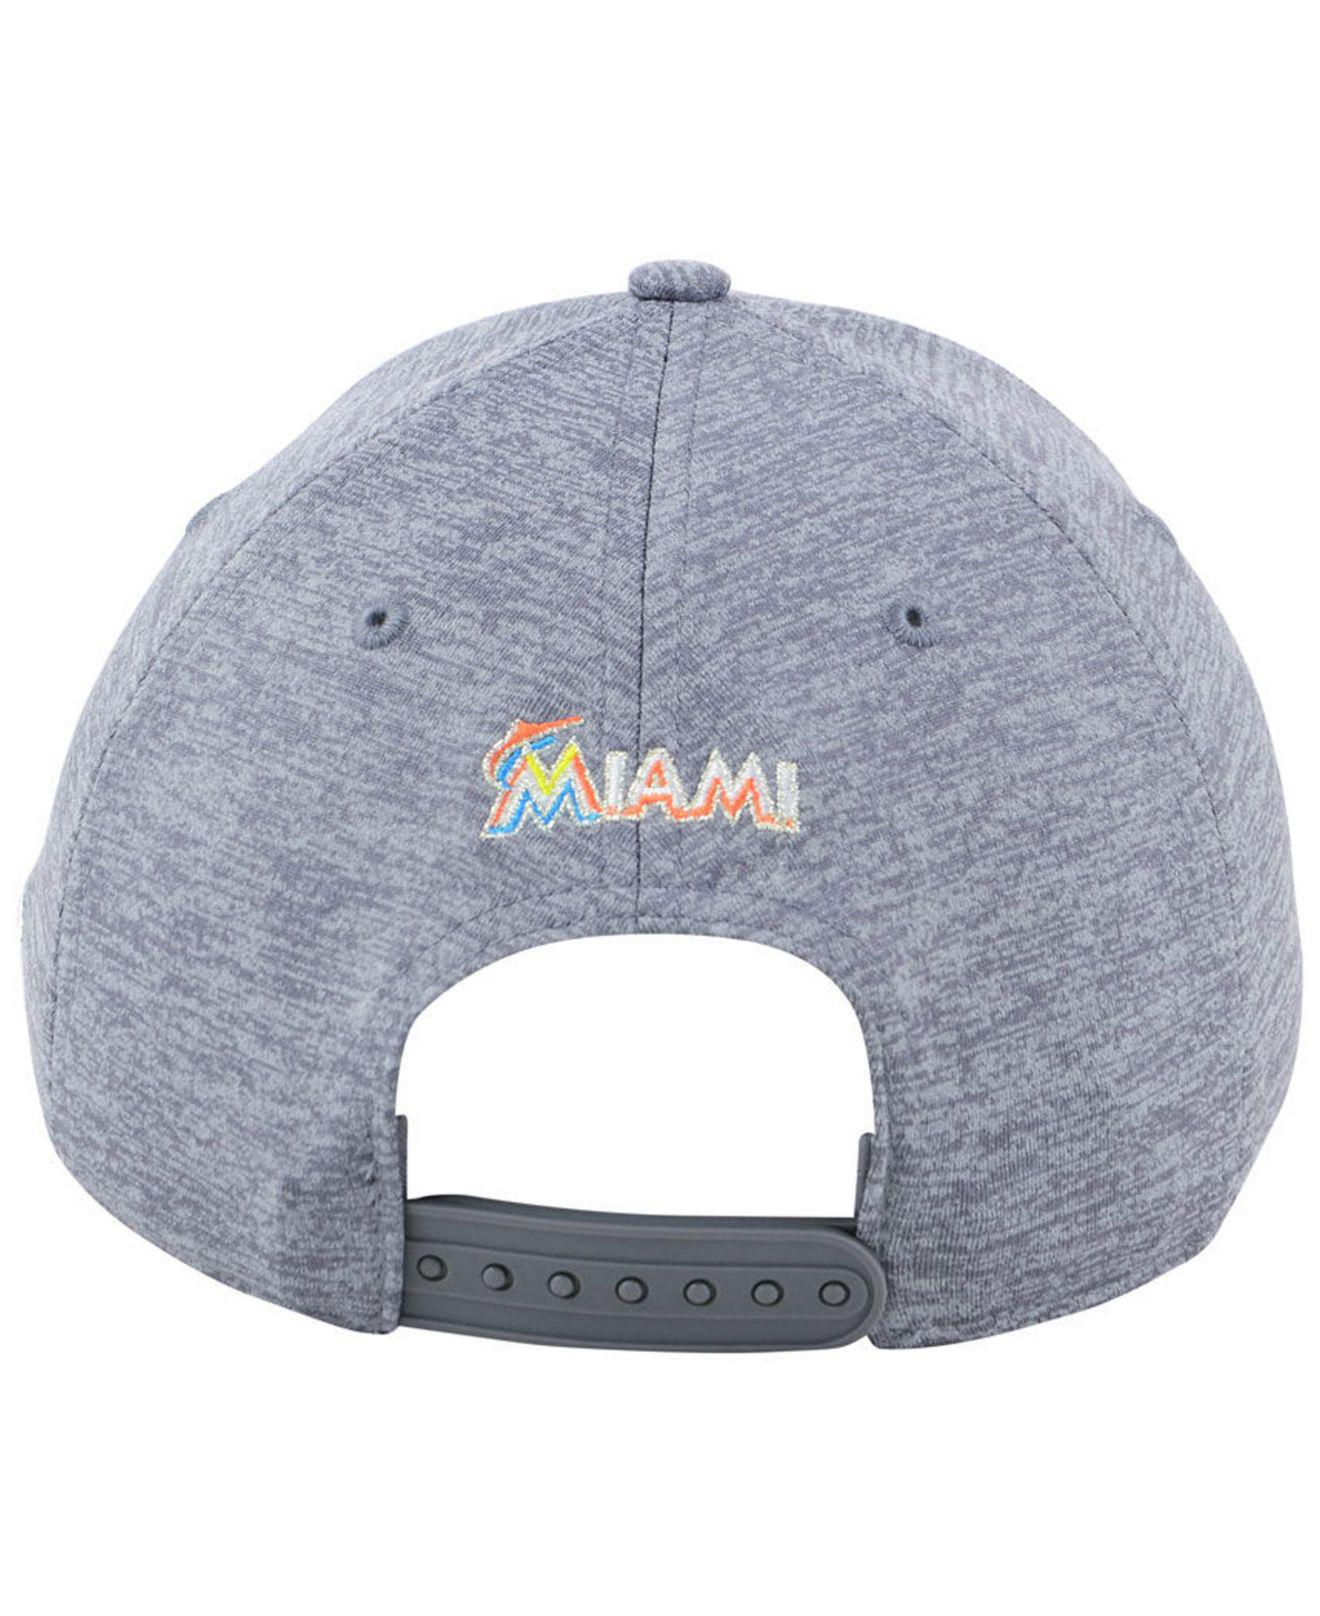 a5f92edeb51 ... discount code for lyst under armour miami marlins twist closer cap in  gray for men 94c27